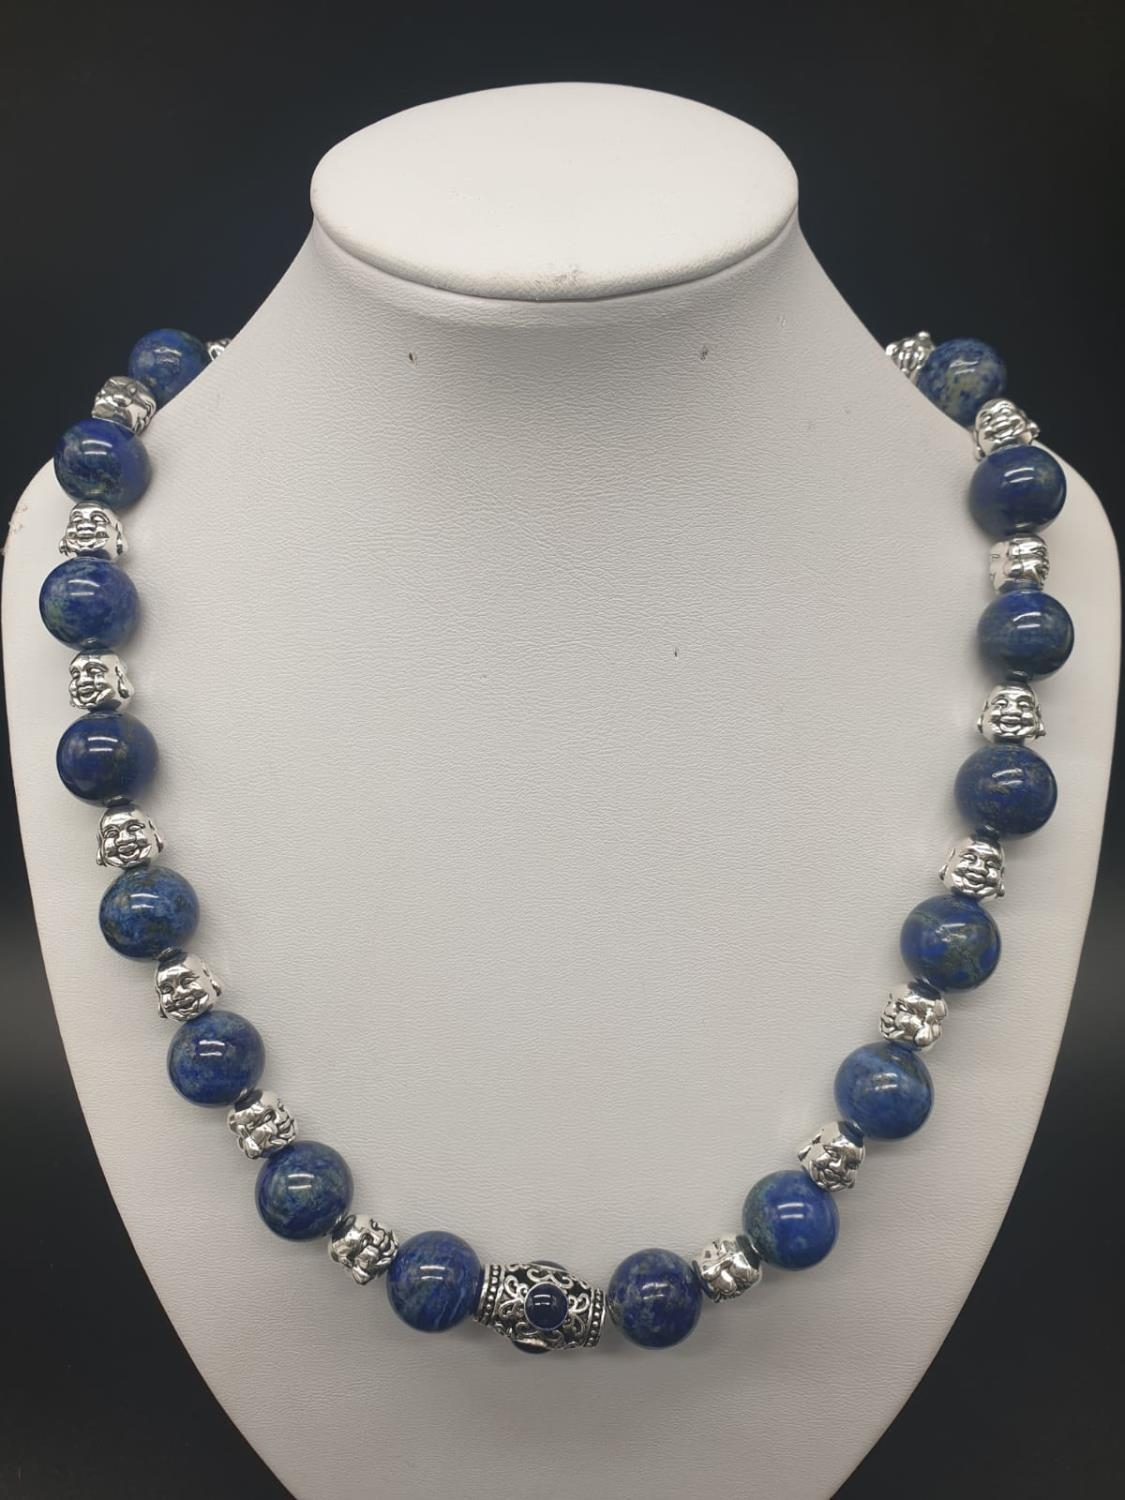 A Tibetan Buddhist lapis lazuli necklace and earrings set in a presentation box. Necklace length: - Image 2 of 11